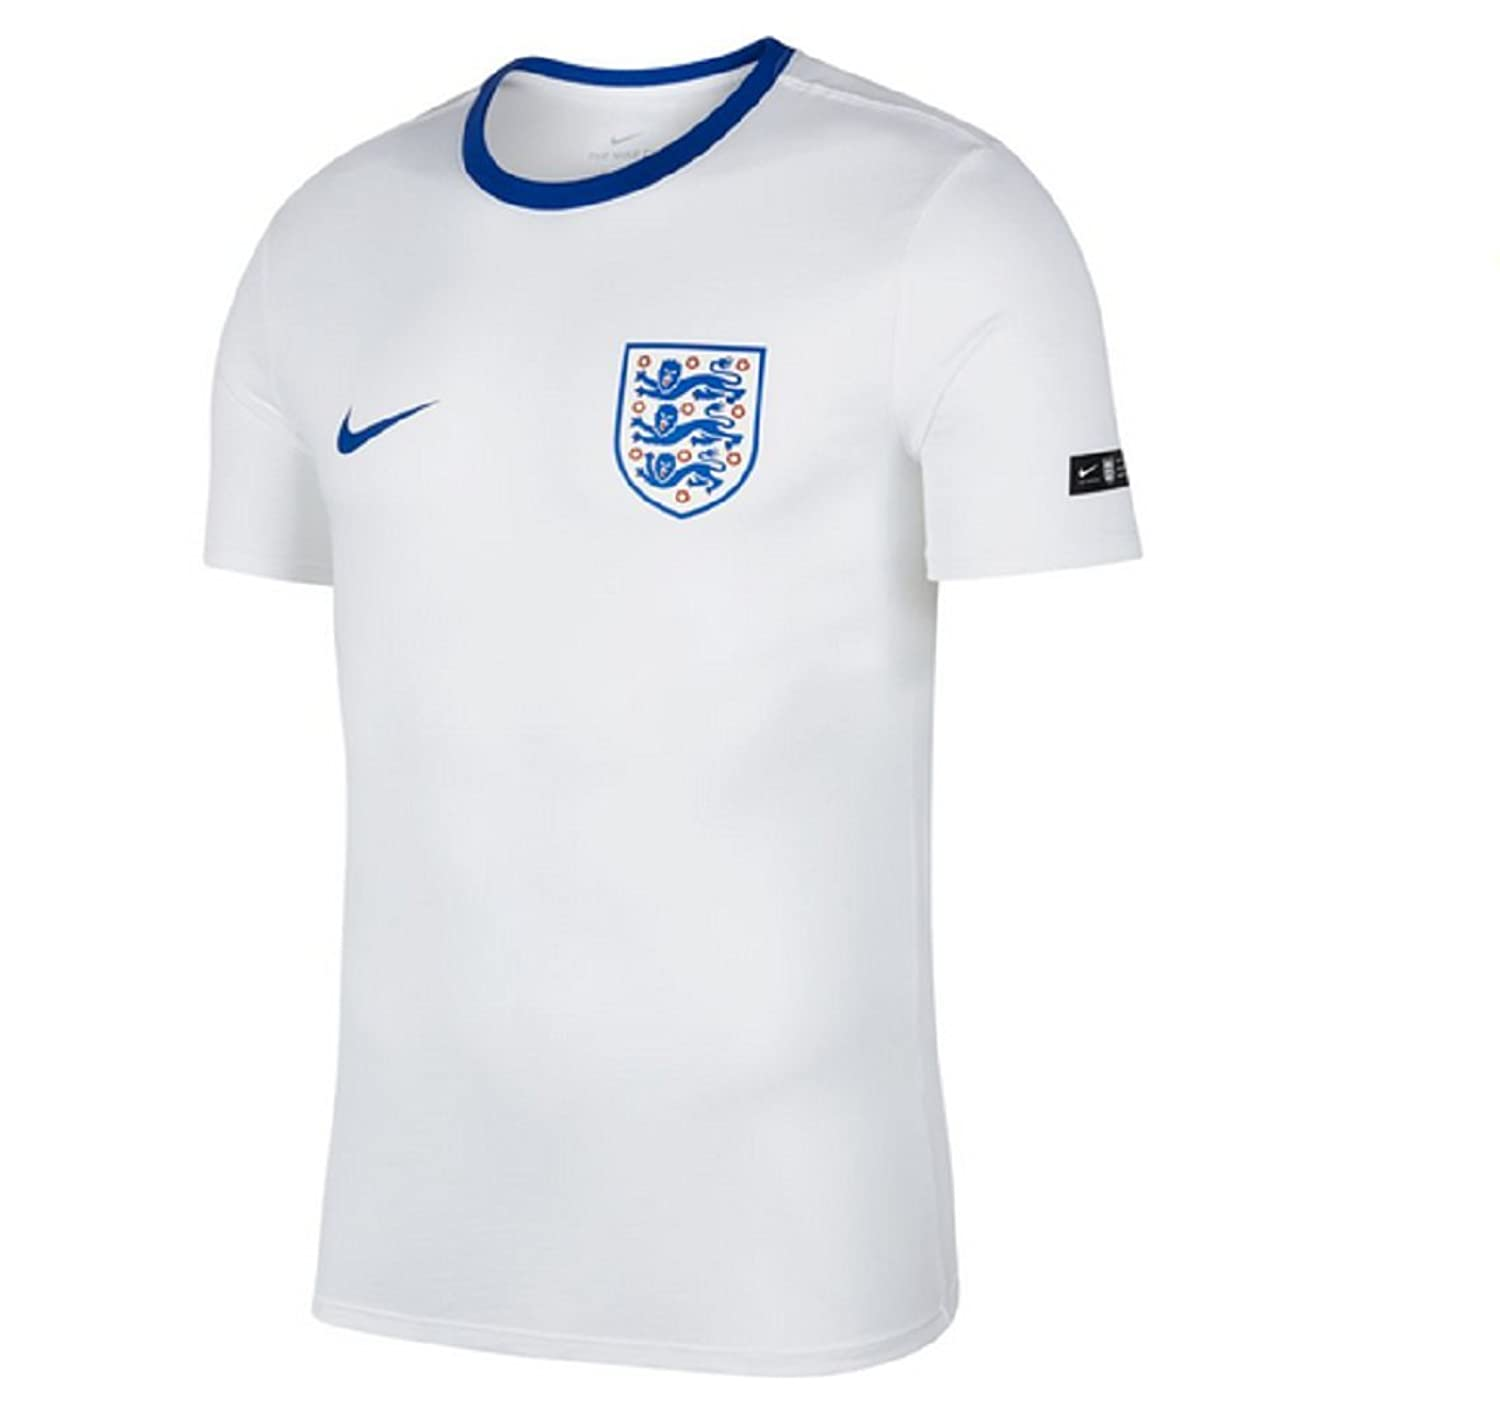 64073dd87 Nike England Crest Polo Shirt Mens - Joe Maloy